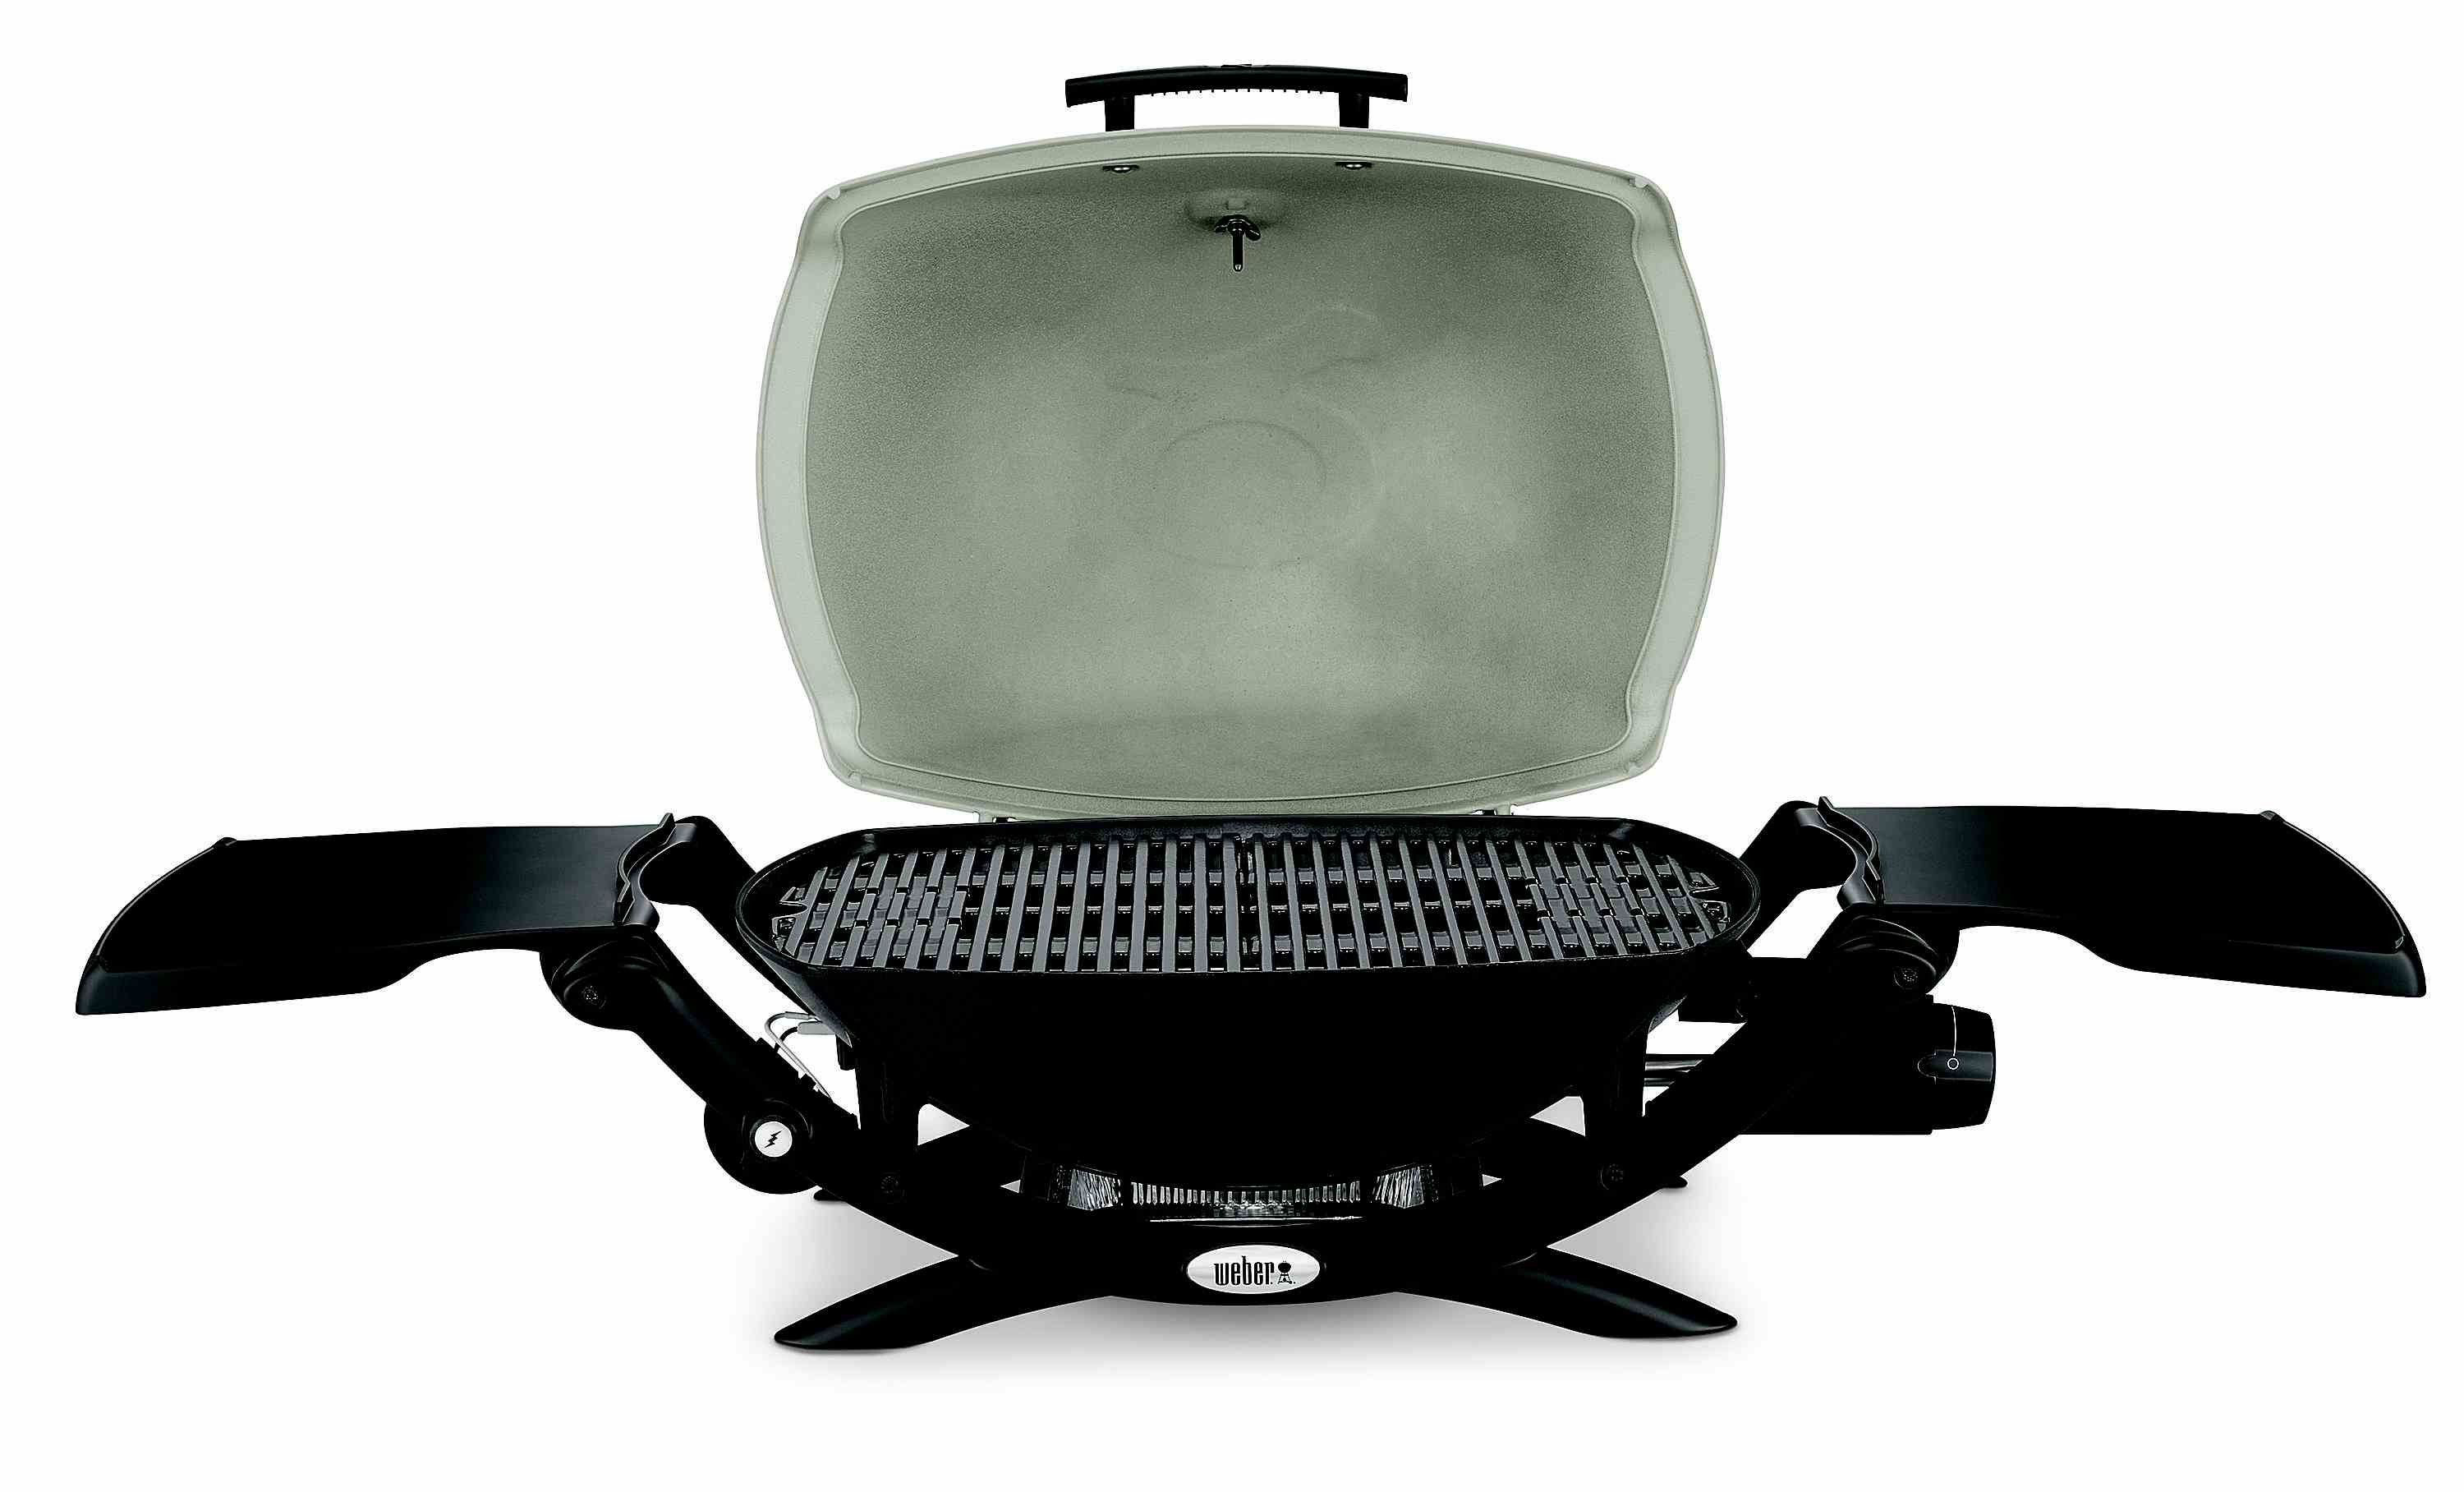 The 10 Best Portable Gas Grills to Buy in 2018